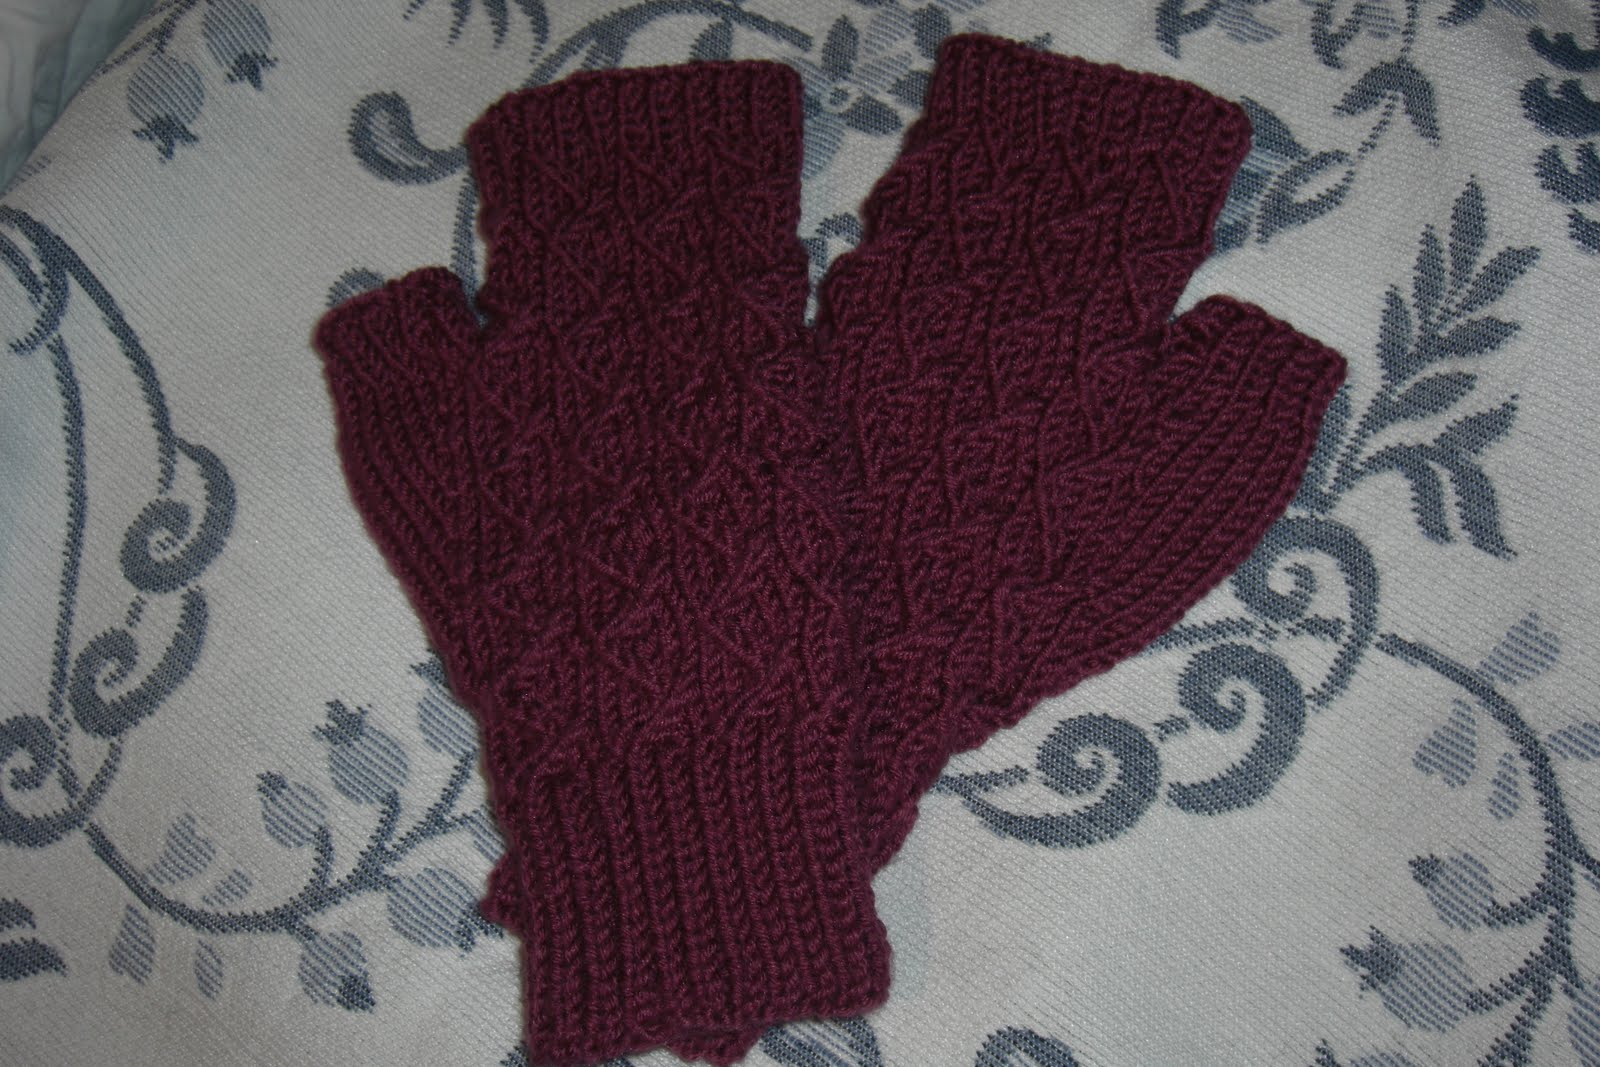 Fingerless gloves darn yarn - I Used Sublime Cashmere Silk Merino Dk Yarn In Rhubarb Soooo Lovely The Yarn Is Super Soft And It Has A Little Bit Of Shine To It And It Shows The